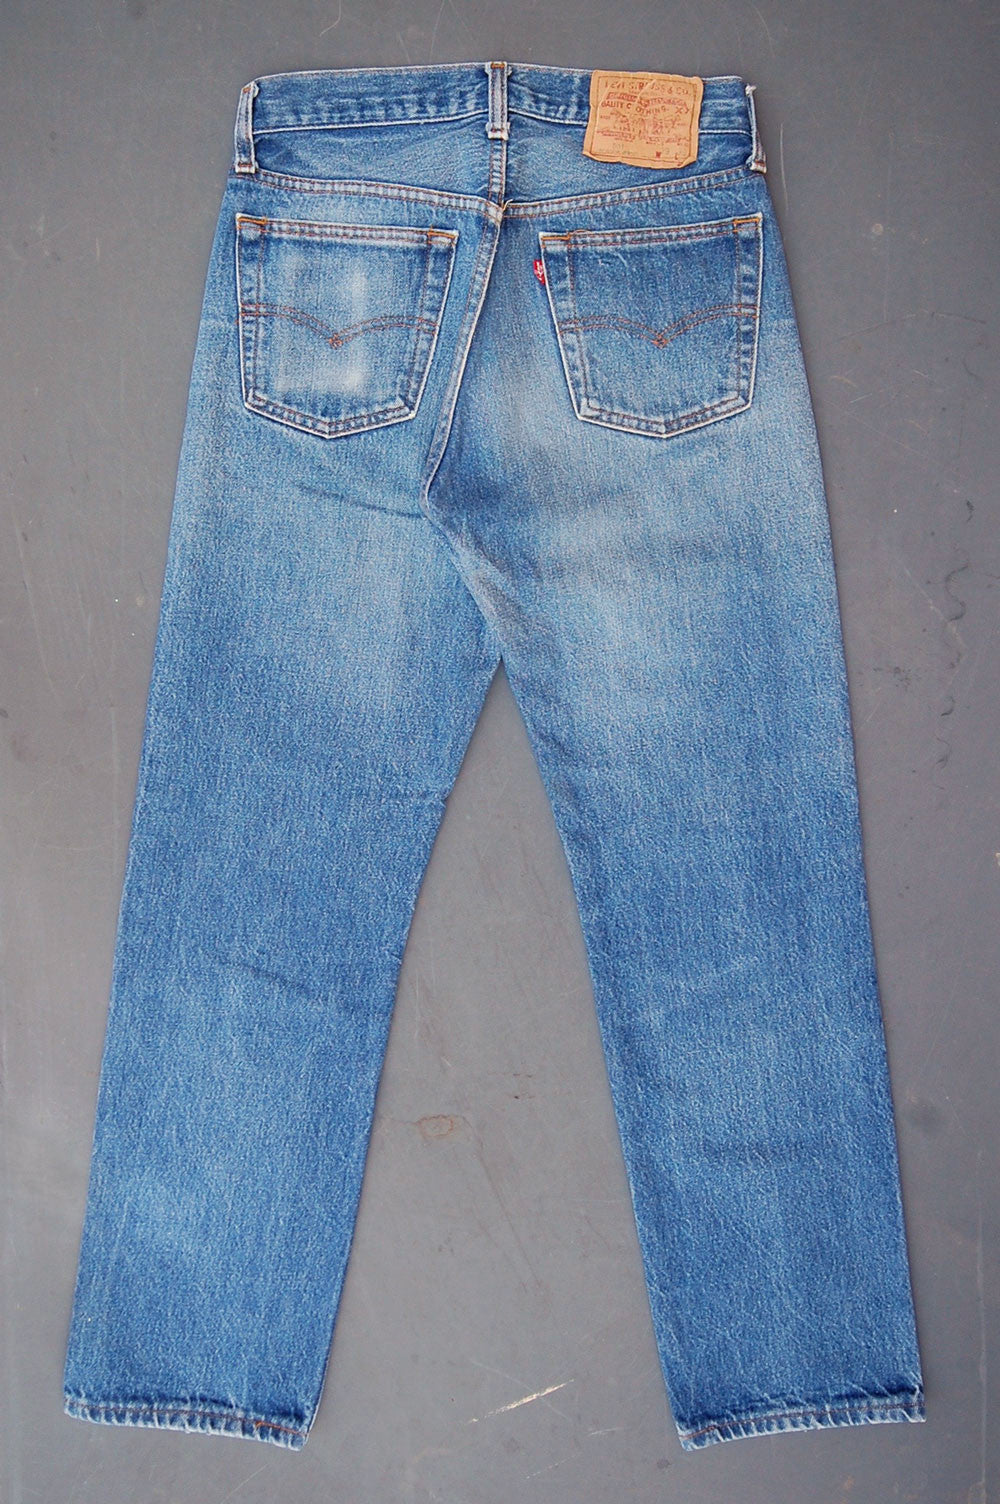 Vintage Levi's 501xx USA Transitional Whiskered Denim Jeans